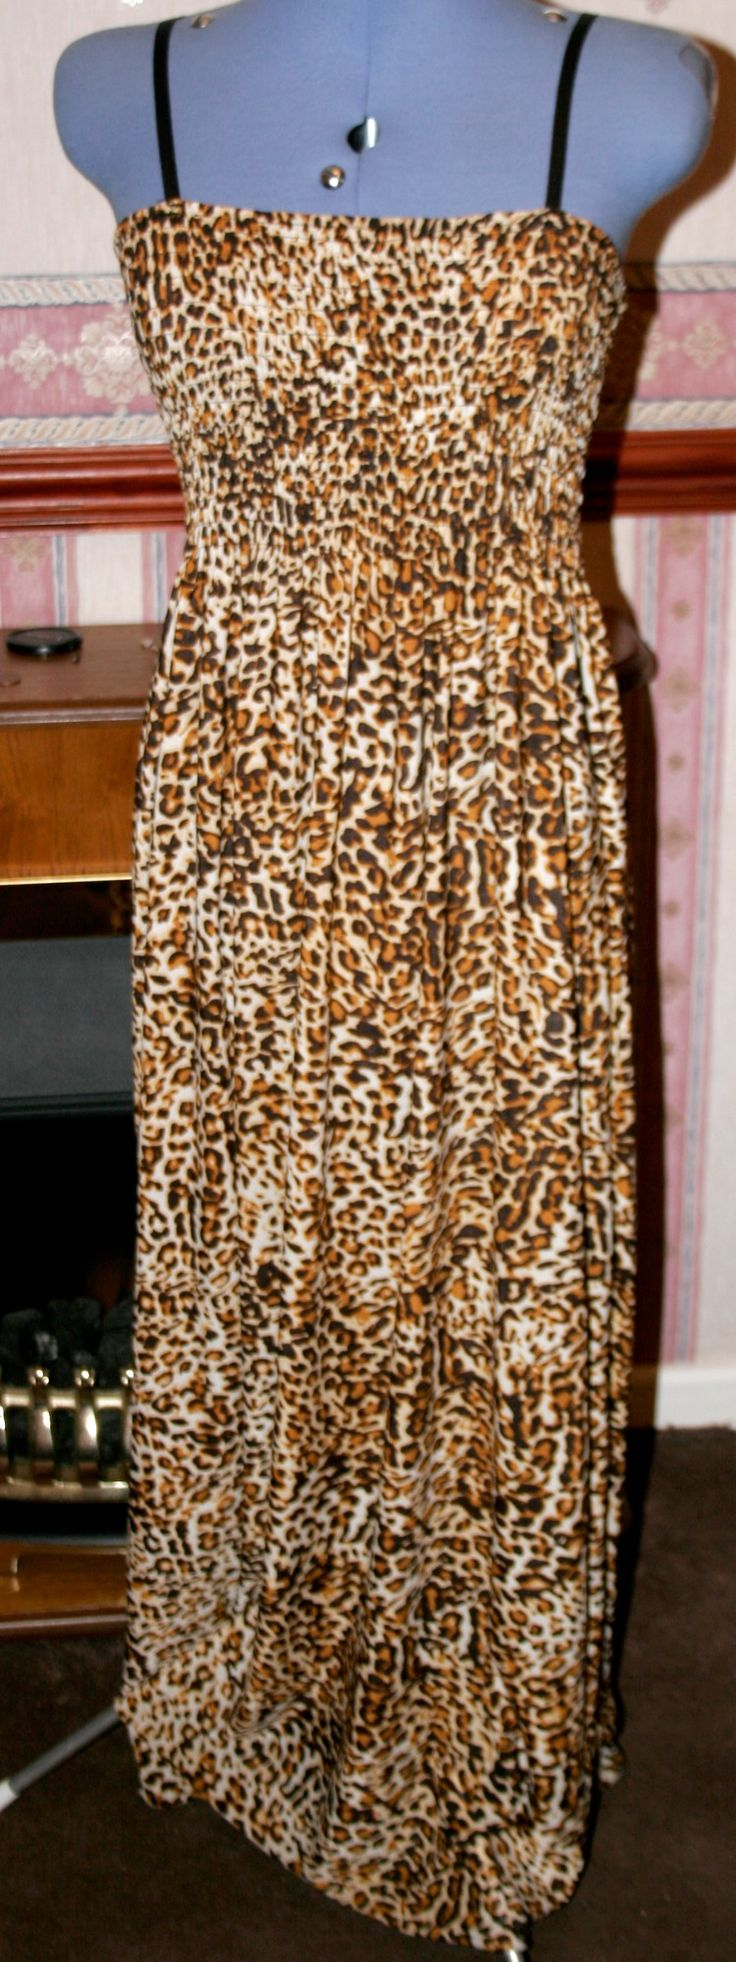 I'm selling Hurmei,Ladies,size14-16,brown animal print,long dress,for holiday ,casual wear. - £6.99 #onselz